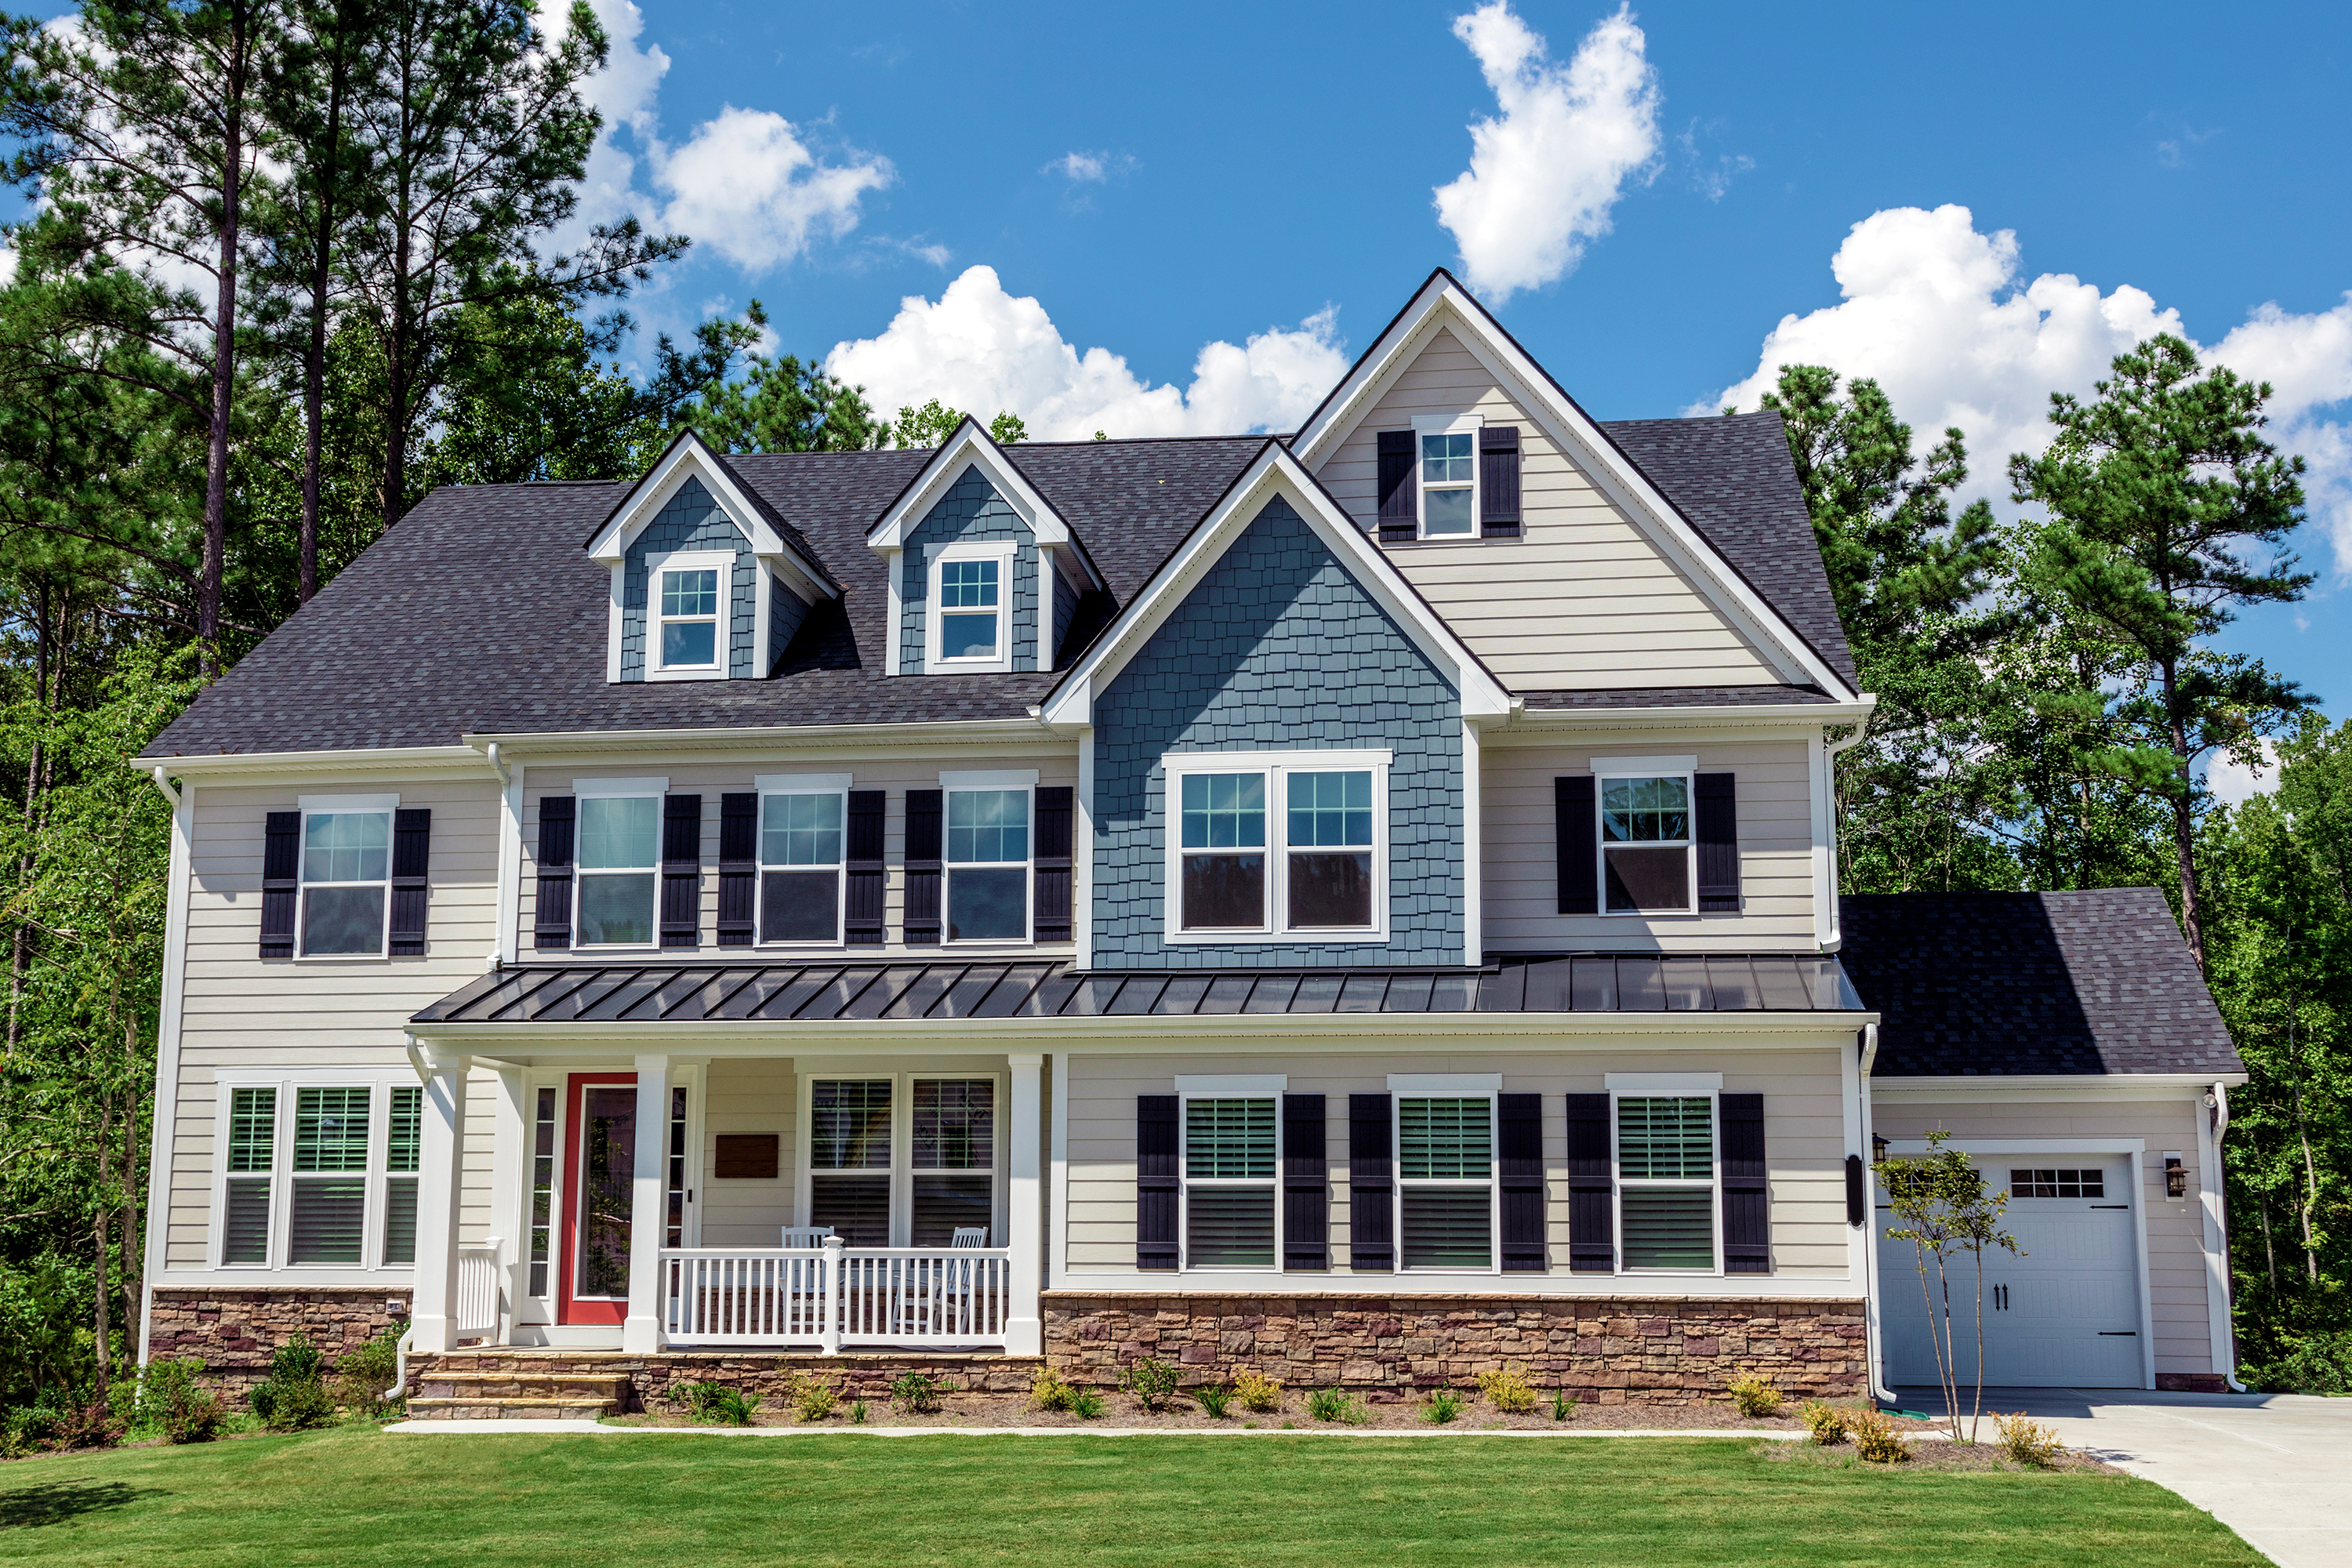 A beautiful house colonial American style in North Carolina.